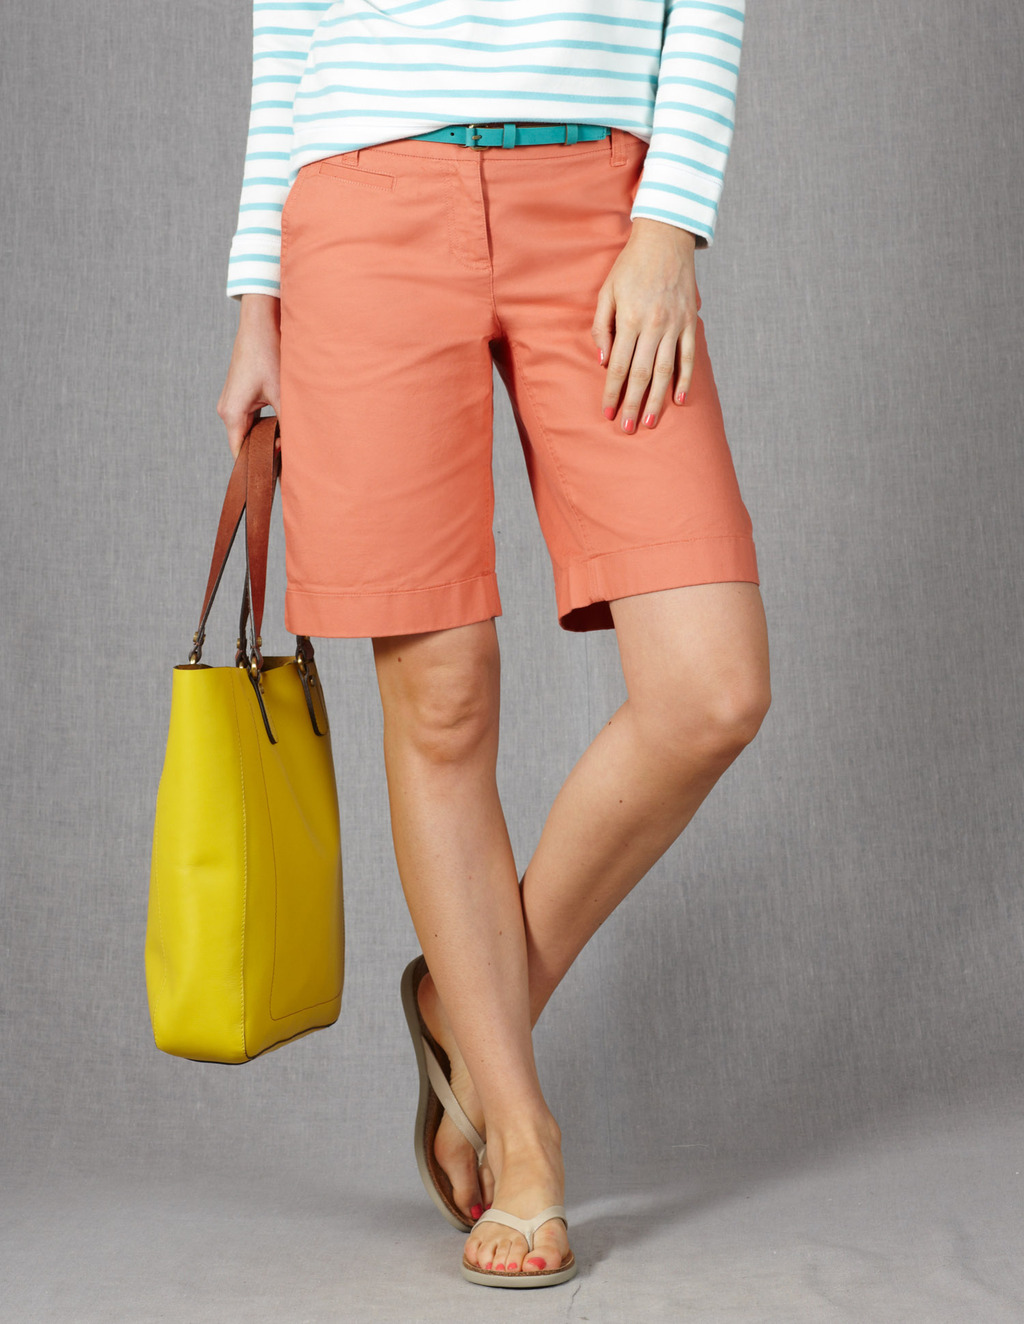 Off Duty Shorts - pattern: plain; pocket detail: small back pockets, pockets at the sides; waist detail: belted waist/tie at waist/drawstring; waist: mid/regular rise; predominant colour: coral; occasions: casual, holiday; fibres: cotton - stretch; texture group: cotton feel fabrics; pattern type: fabric; season: s/s 2013; pattern size: standard (bottom); style: shorts; length: mid thigh shorts; fit: standard